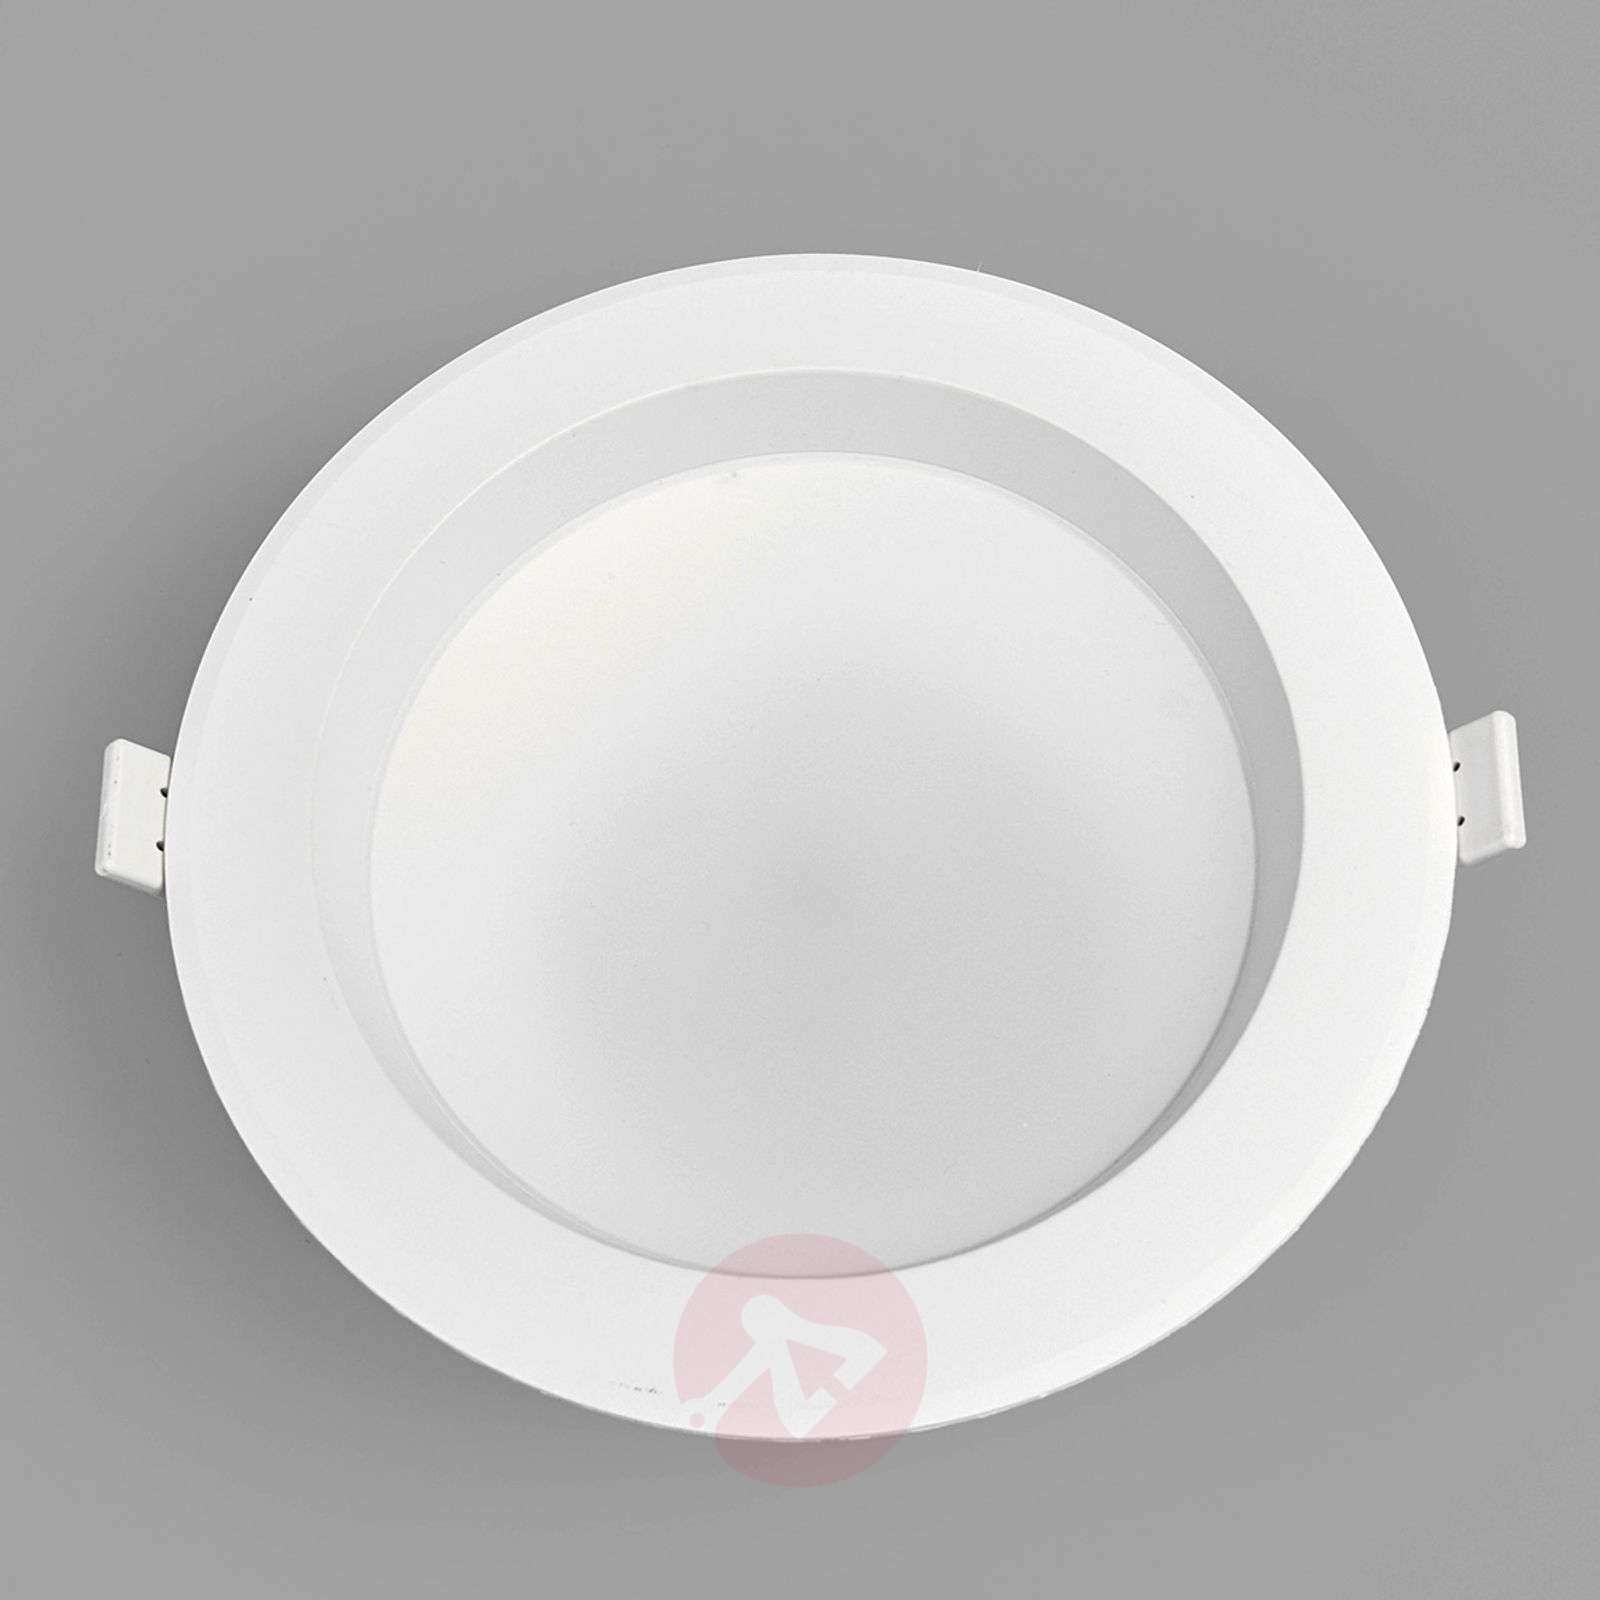 units supply light genius products power downlights pr led for external ceiling dali recessed downlig lights or en off on